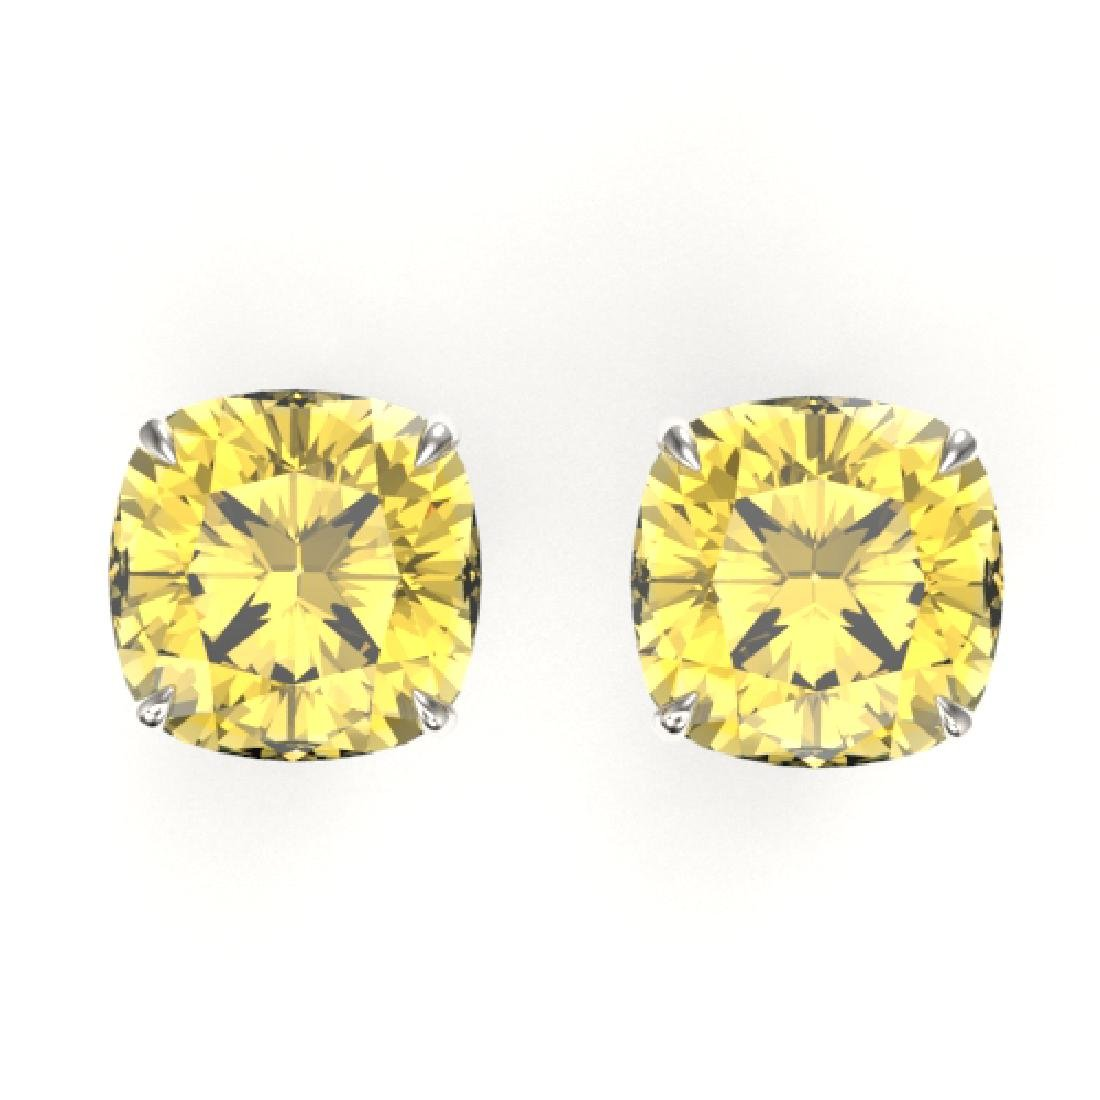 12 CTW Cushion Cut Citrine Designer Solitaire Stud